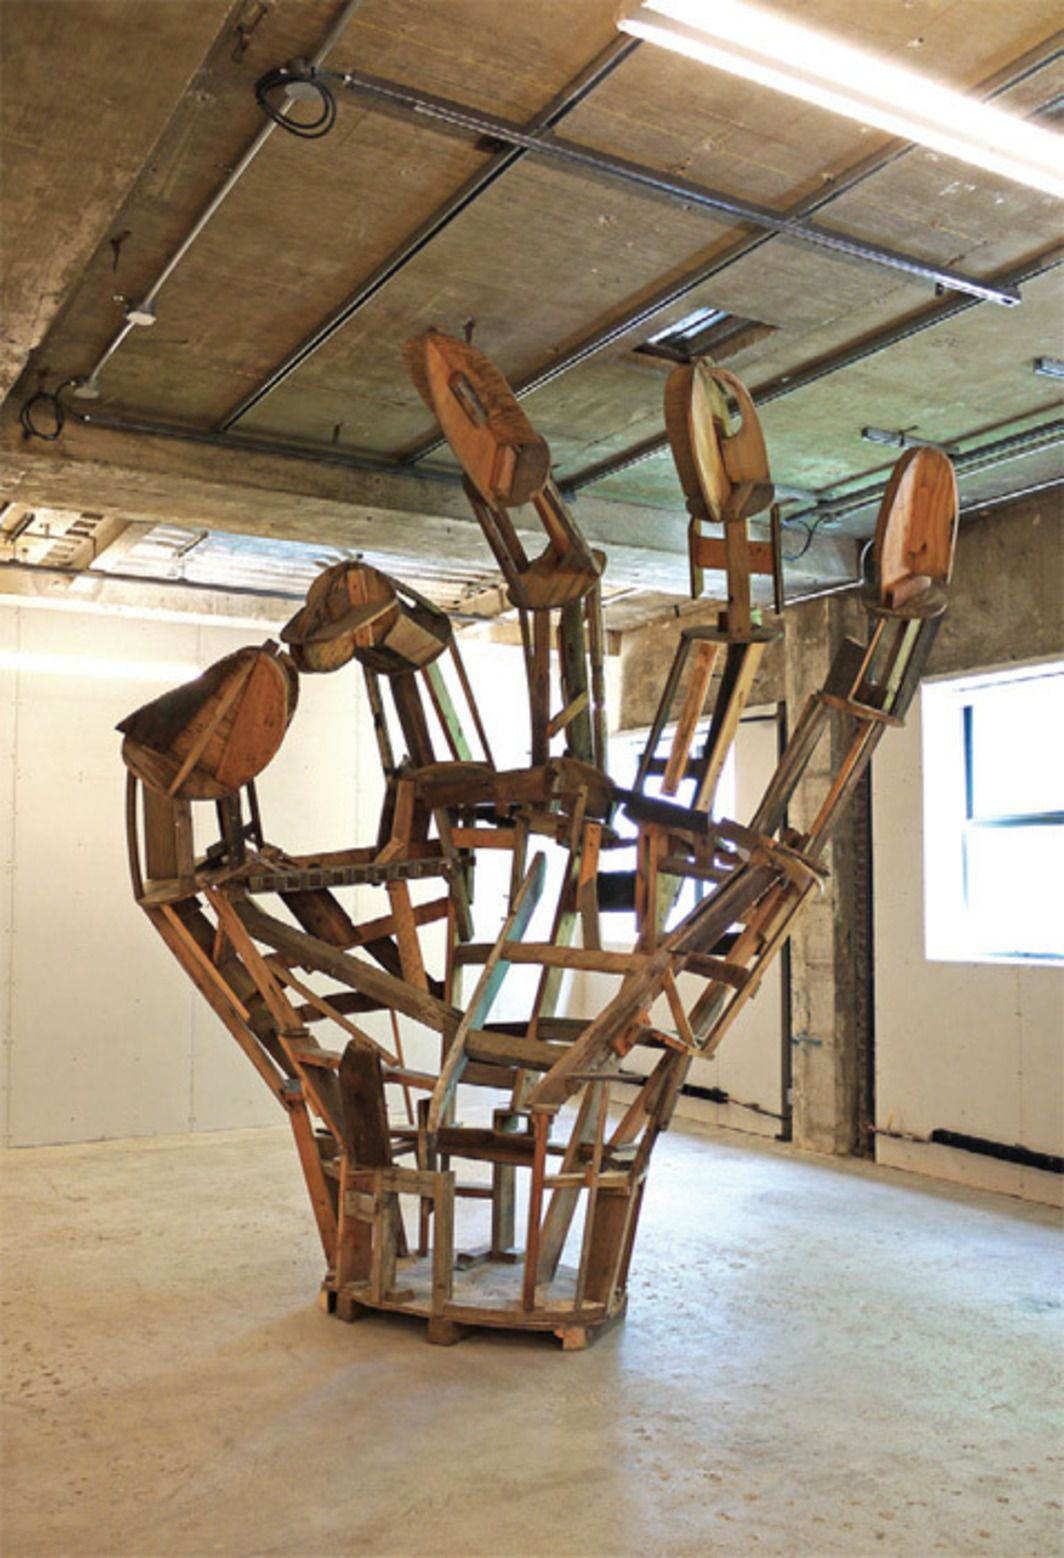 """Peter Coffin,Untitled (Unfinished OK Hand), 2012, wood, wire mesh, bolts, screws, 12' 7 1/2"""" x 6' 5"""" x 11' 6""""."""